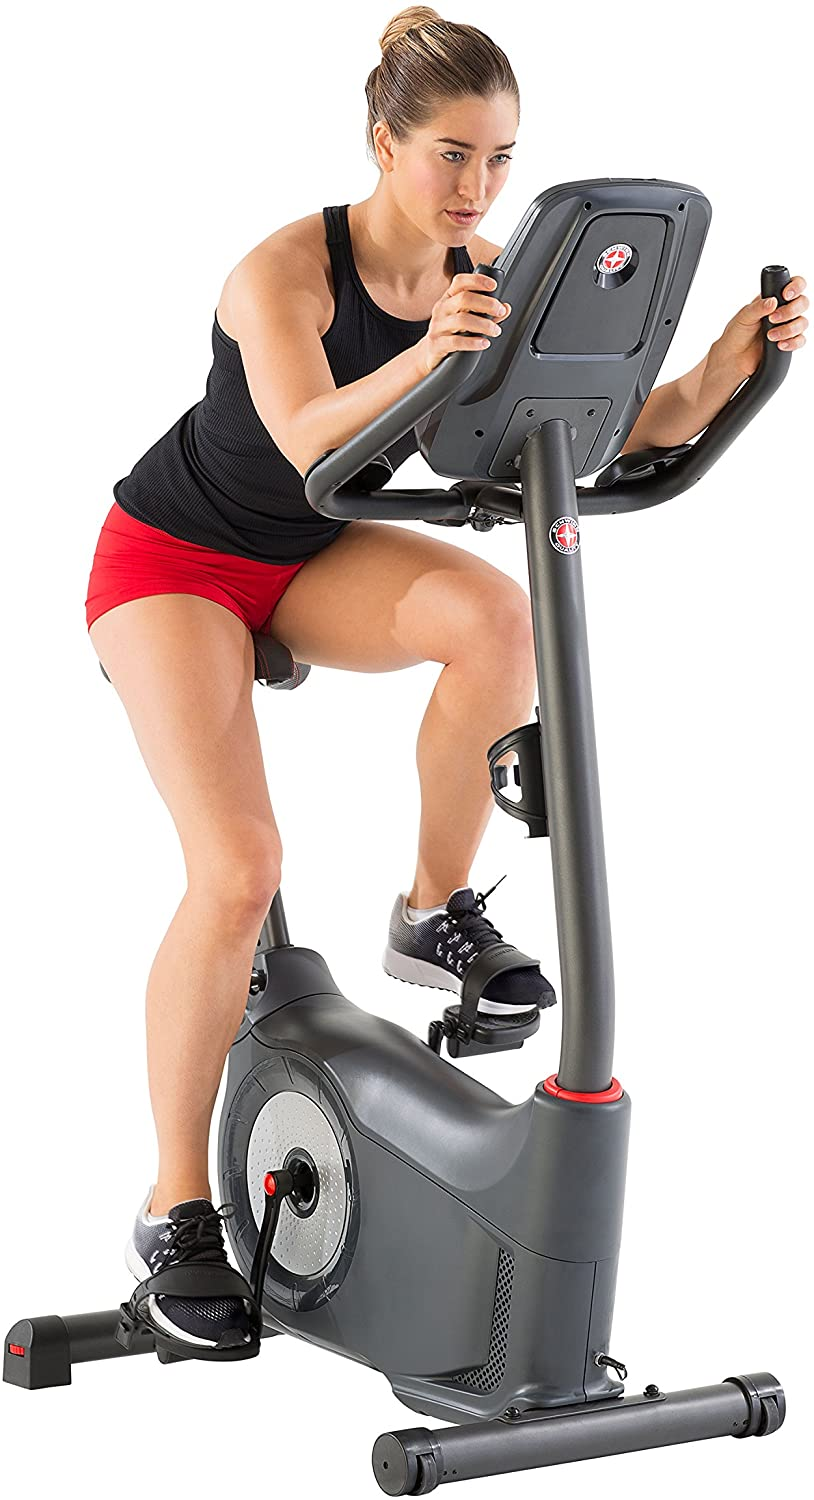 This woman is riding Best Upright Exercise Bike